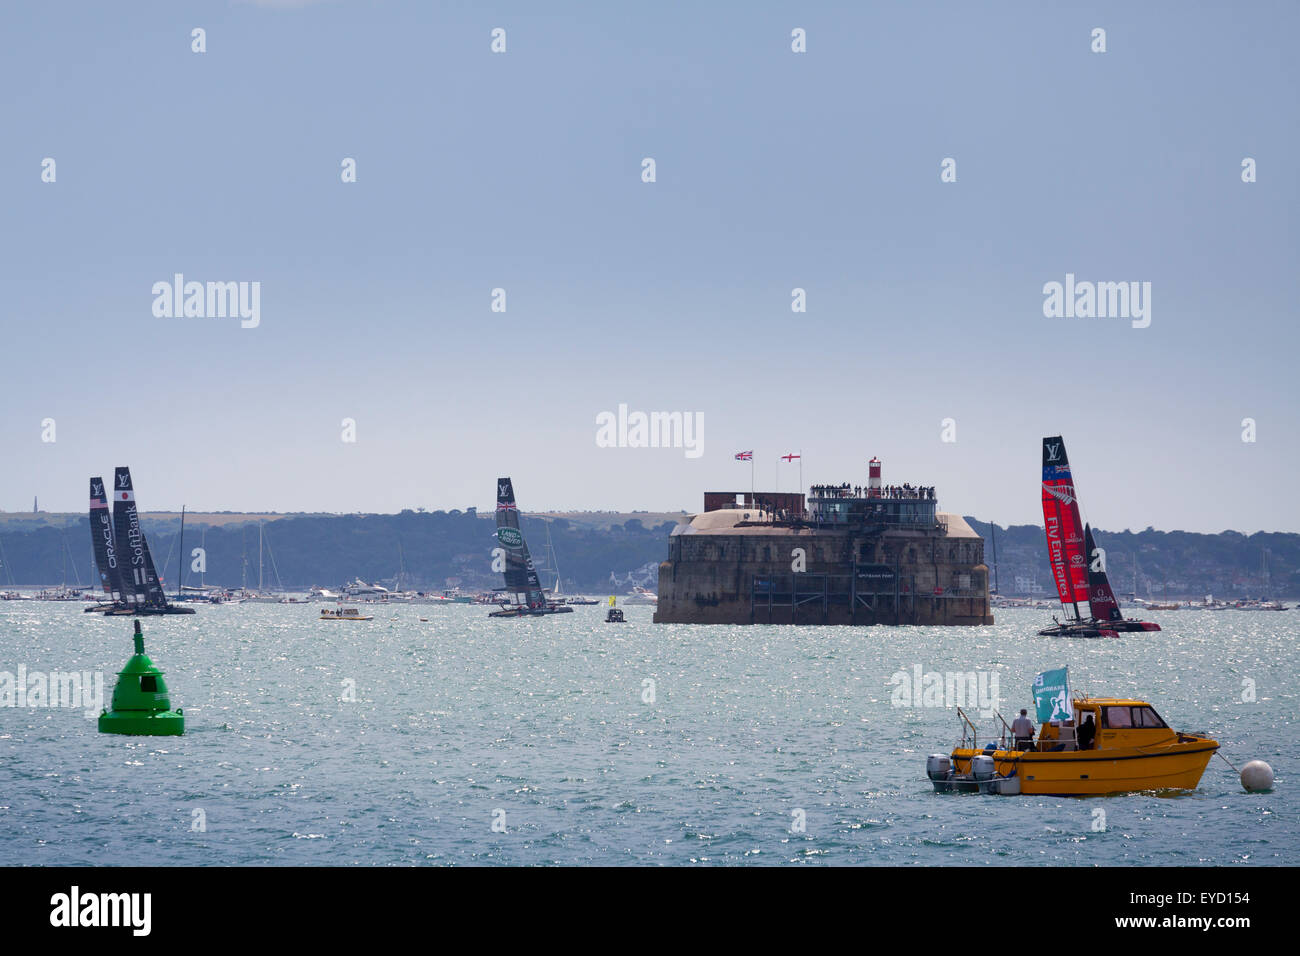 Admirals Cup races off Portsmouth on Saturday 25 July 2015 the yachts race past Spitbank Fort in the Solent - Stock Image